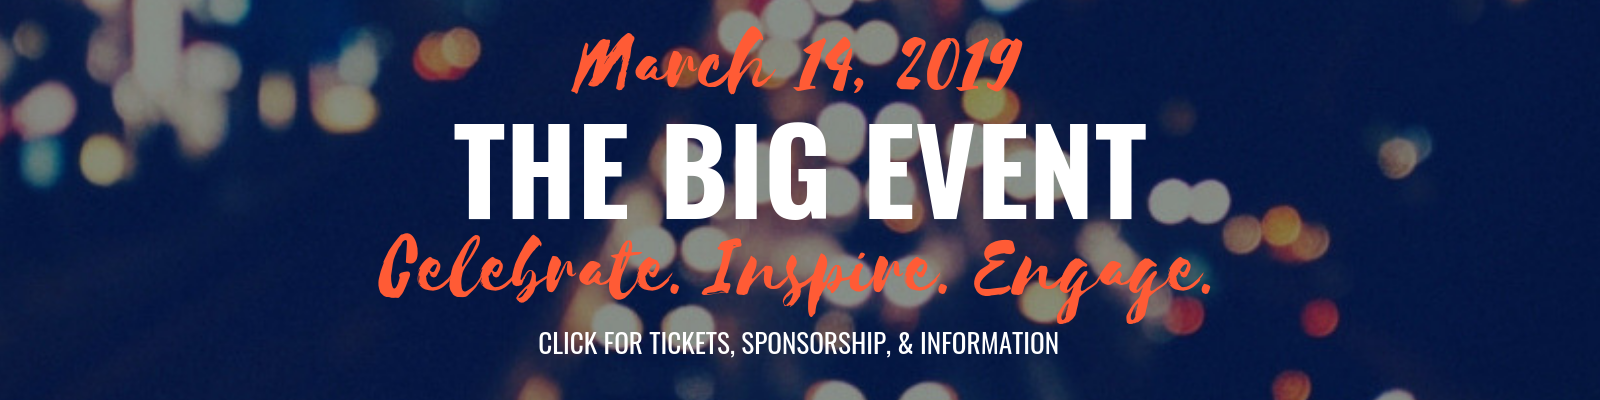 The-Big-Event-2019-banner.png